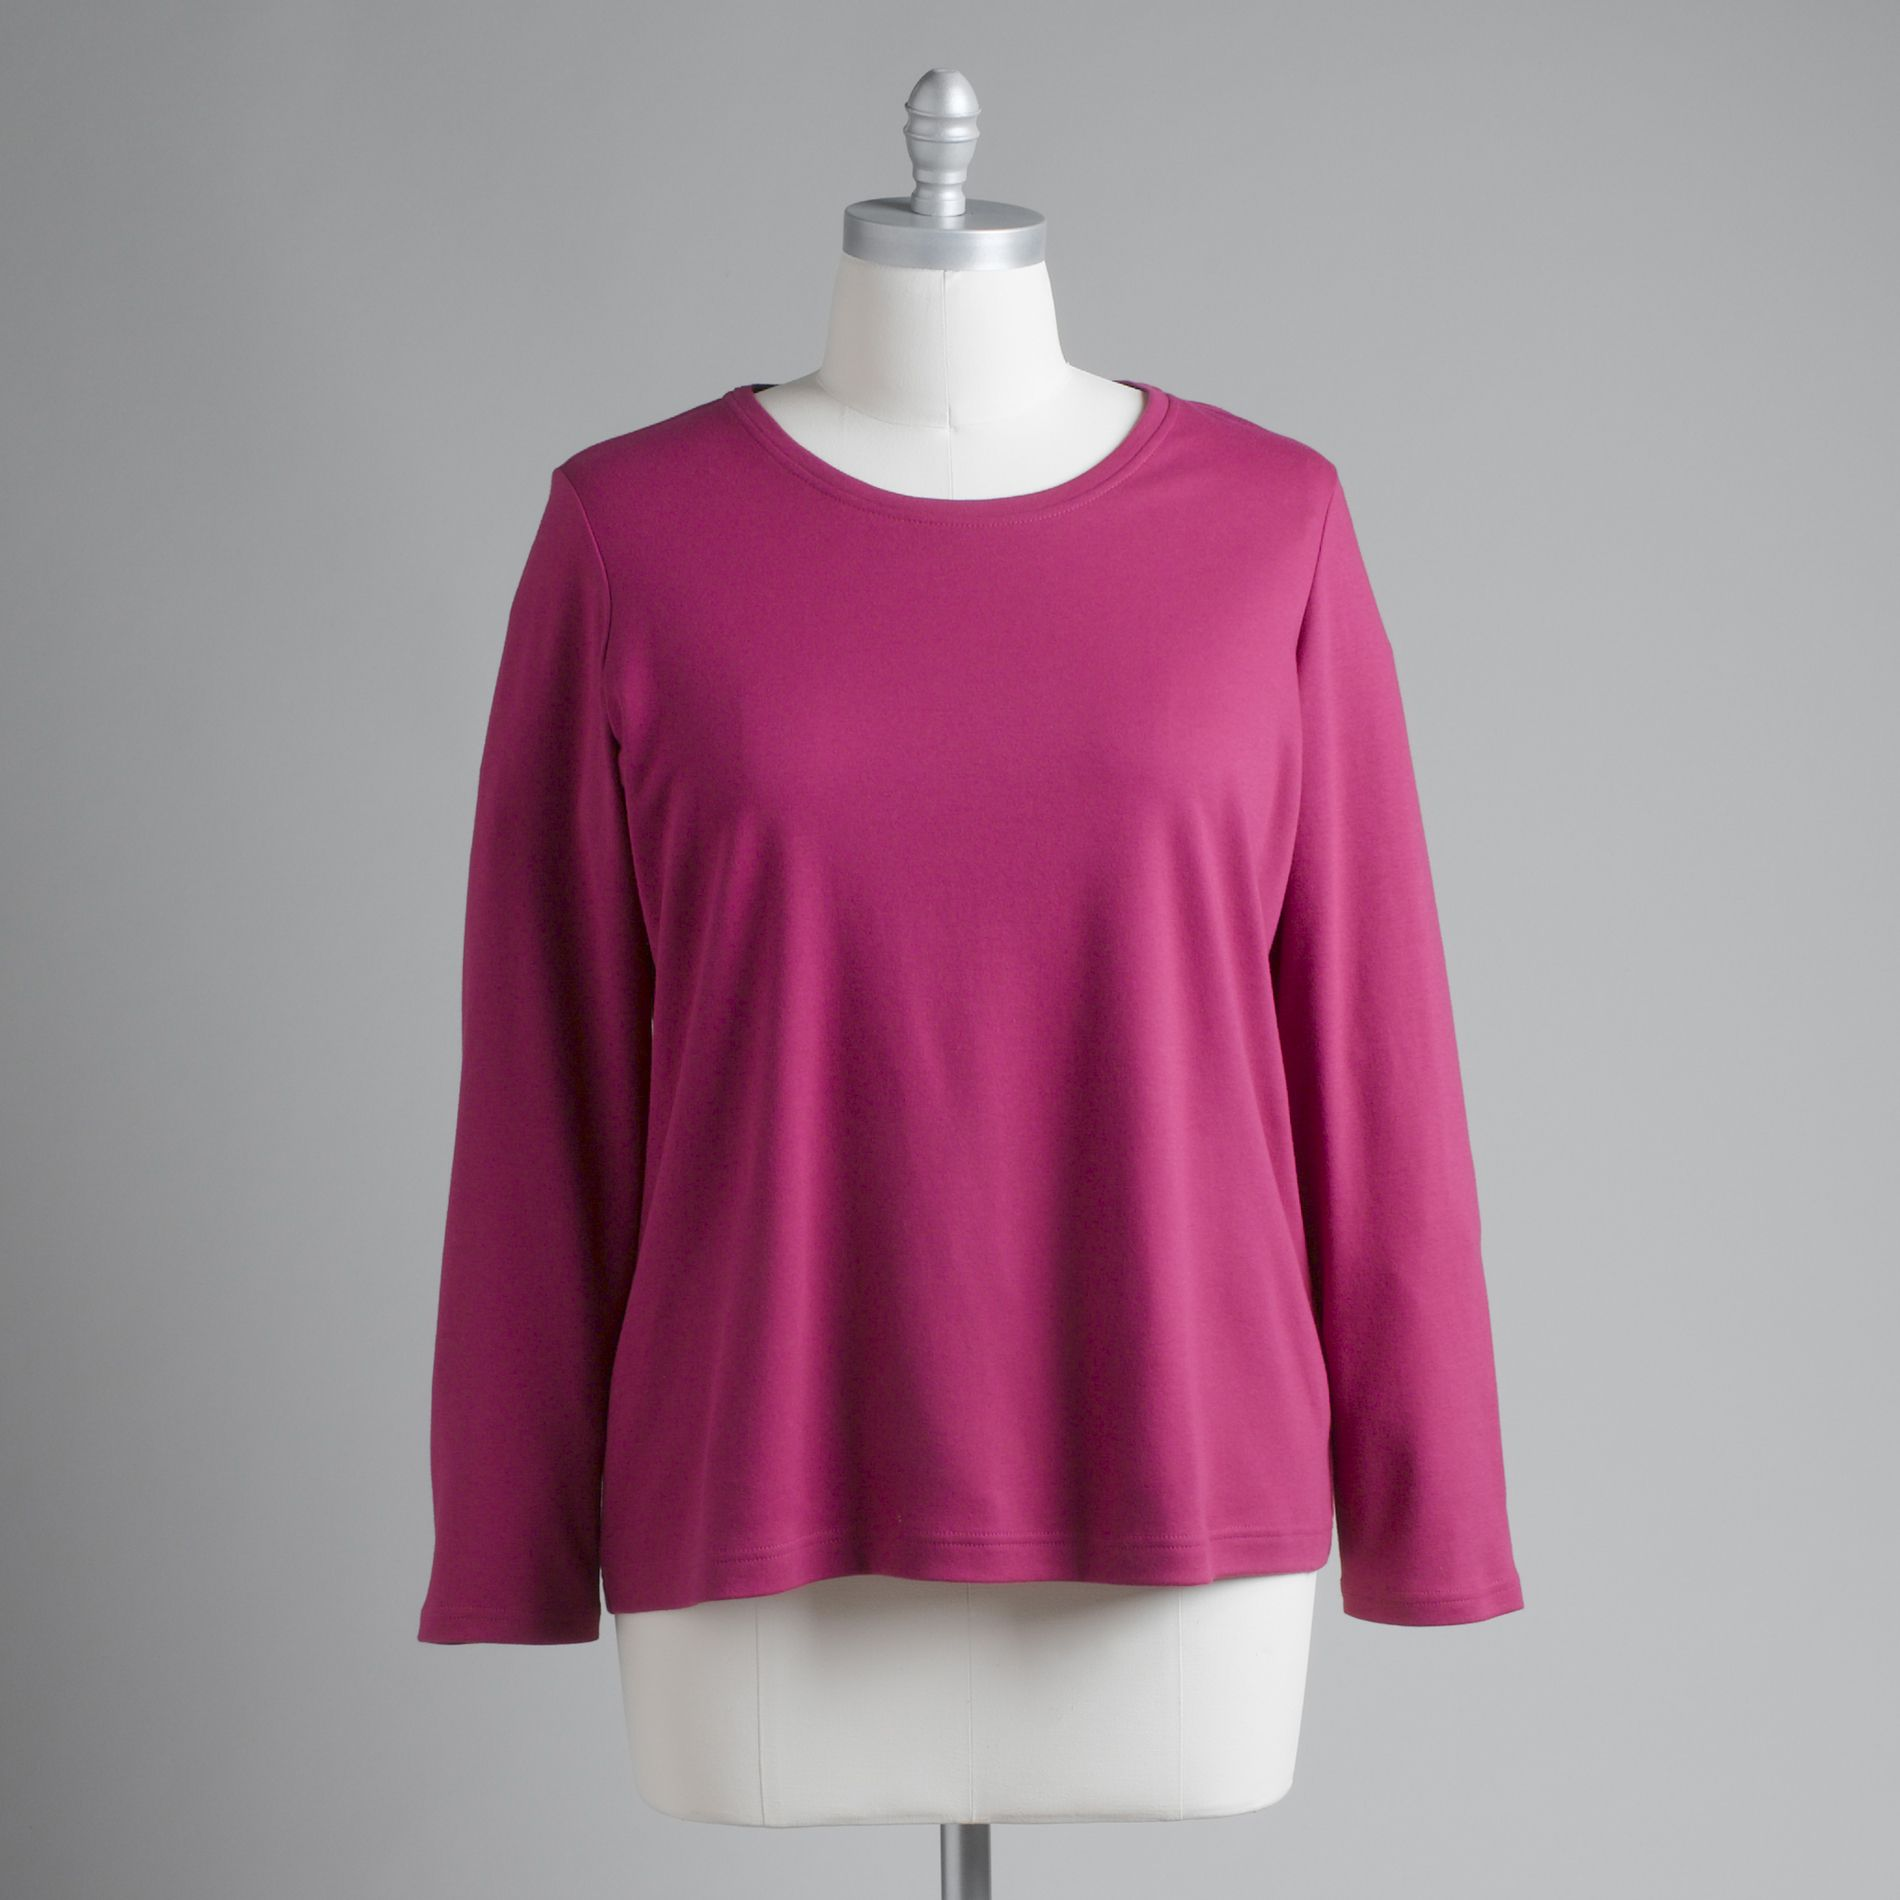 Women's Plus Long-Sleeved T-Shirt